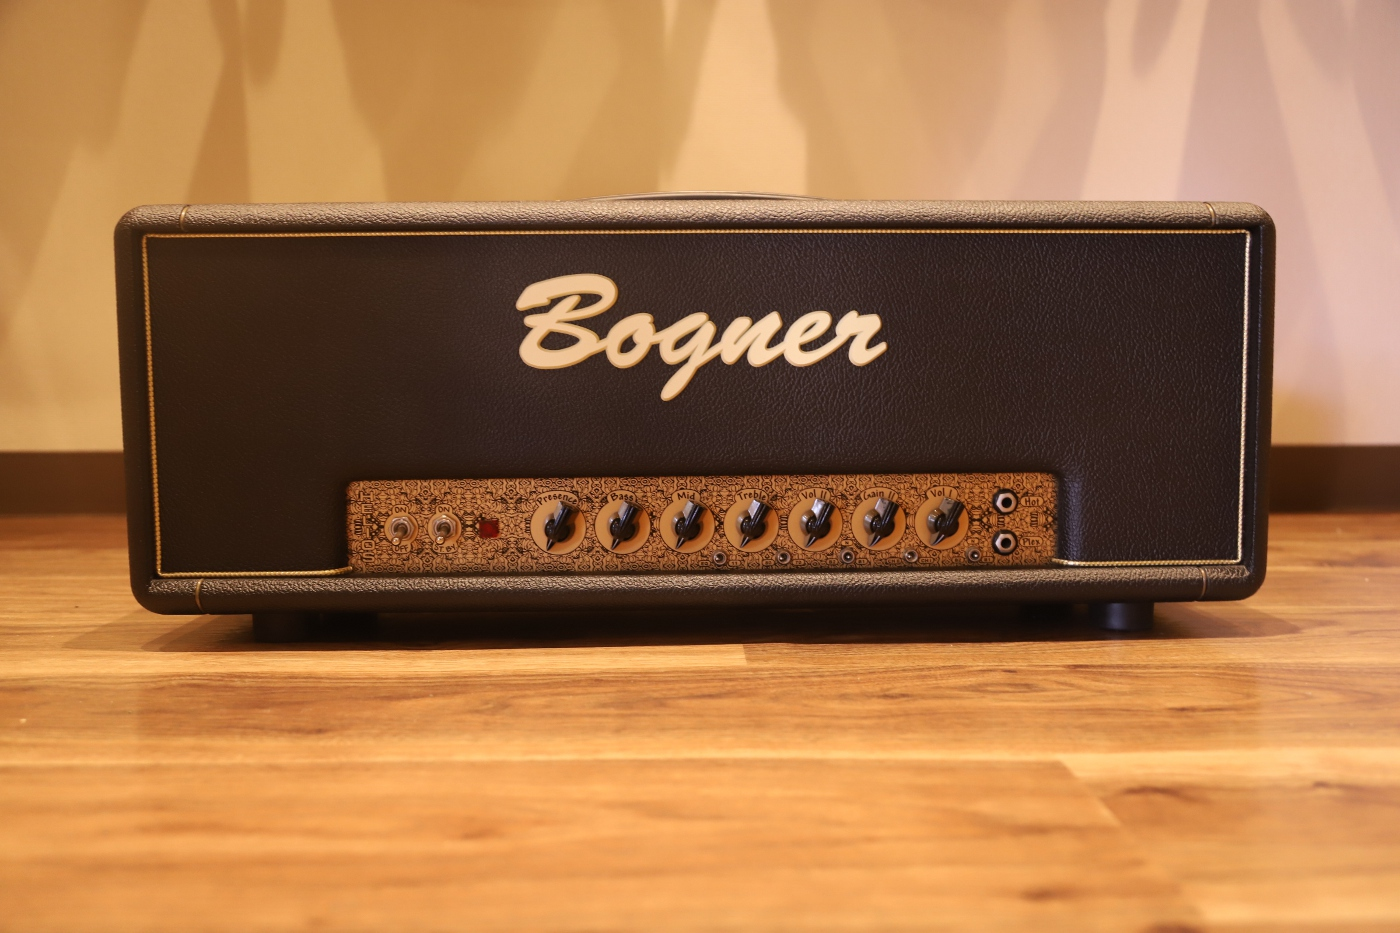 outlet for sale retail prices wide range BOGNER HELIOS 50 [S/N 105301] ボグナーヘリオス 50 guitar head amplifier present  conditions handing over